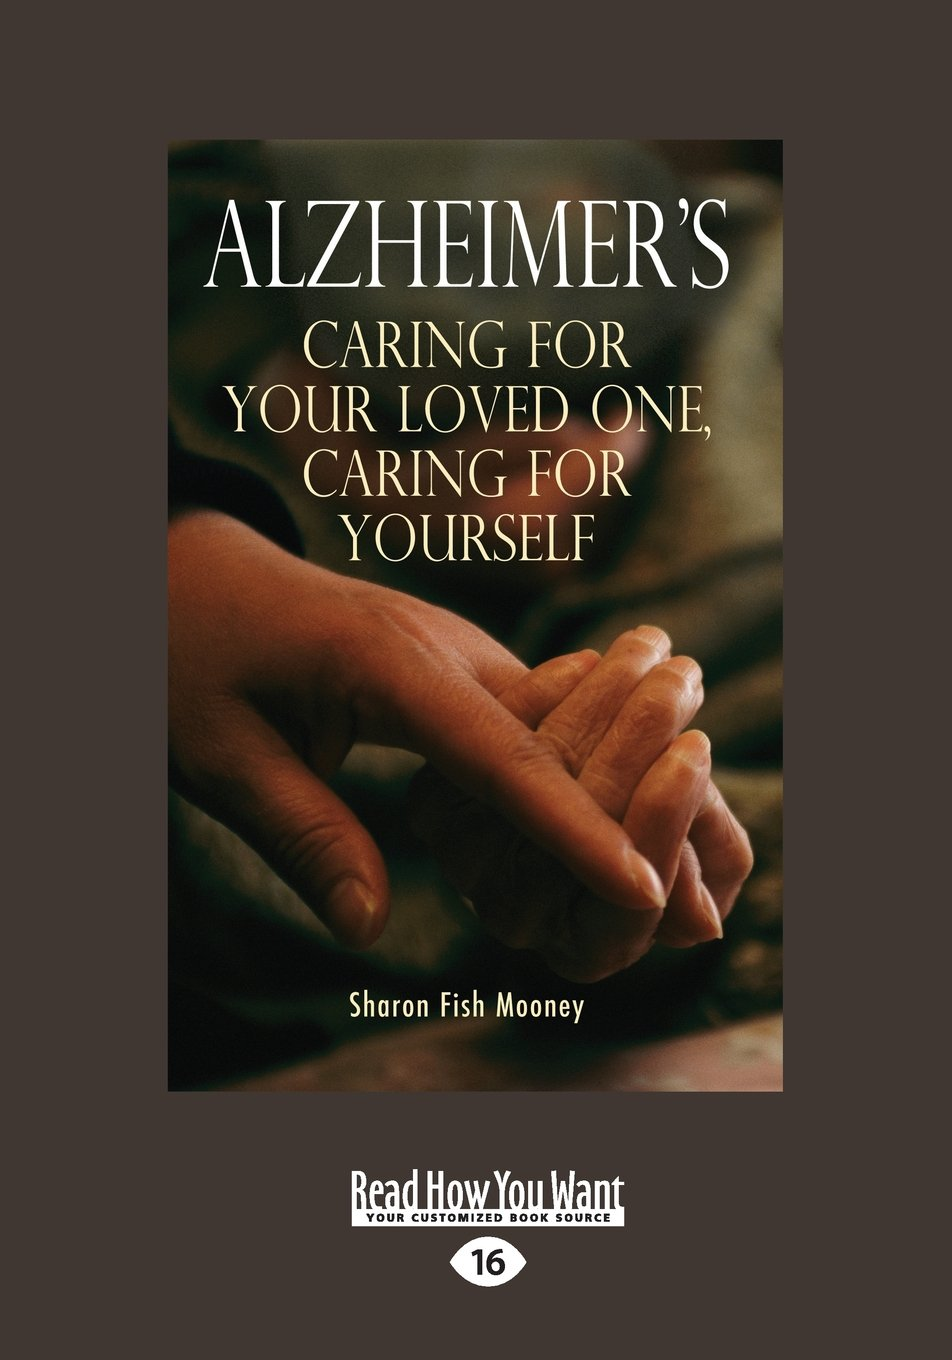 Alzheimer's: Caring for Your Loved One, Caring for Yourself (Large Print 16pt) PDF